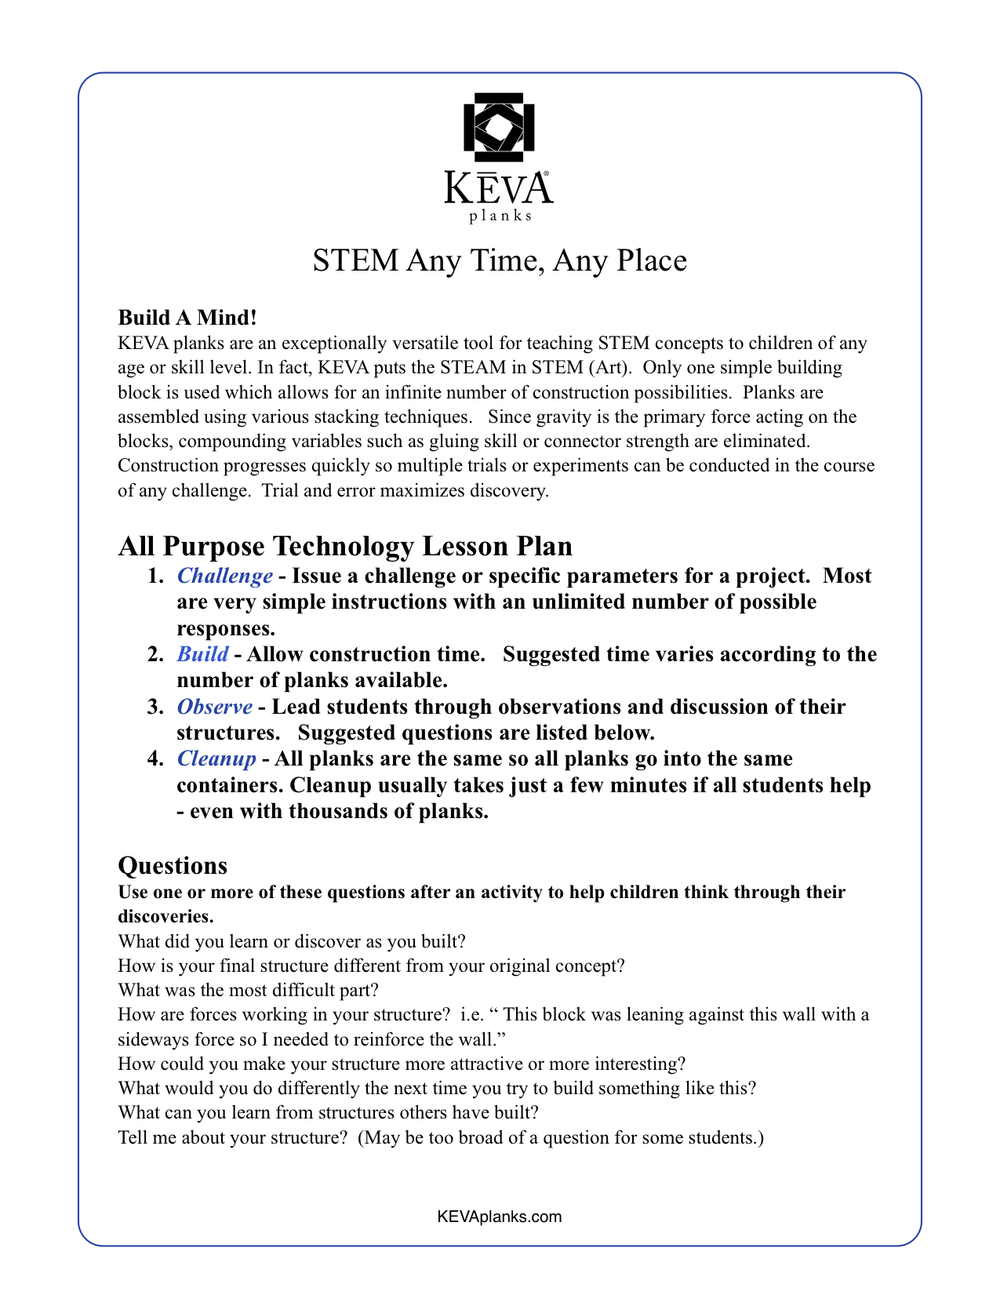 Lesson Plans, Challenges, Games & Activities — KEVA planks